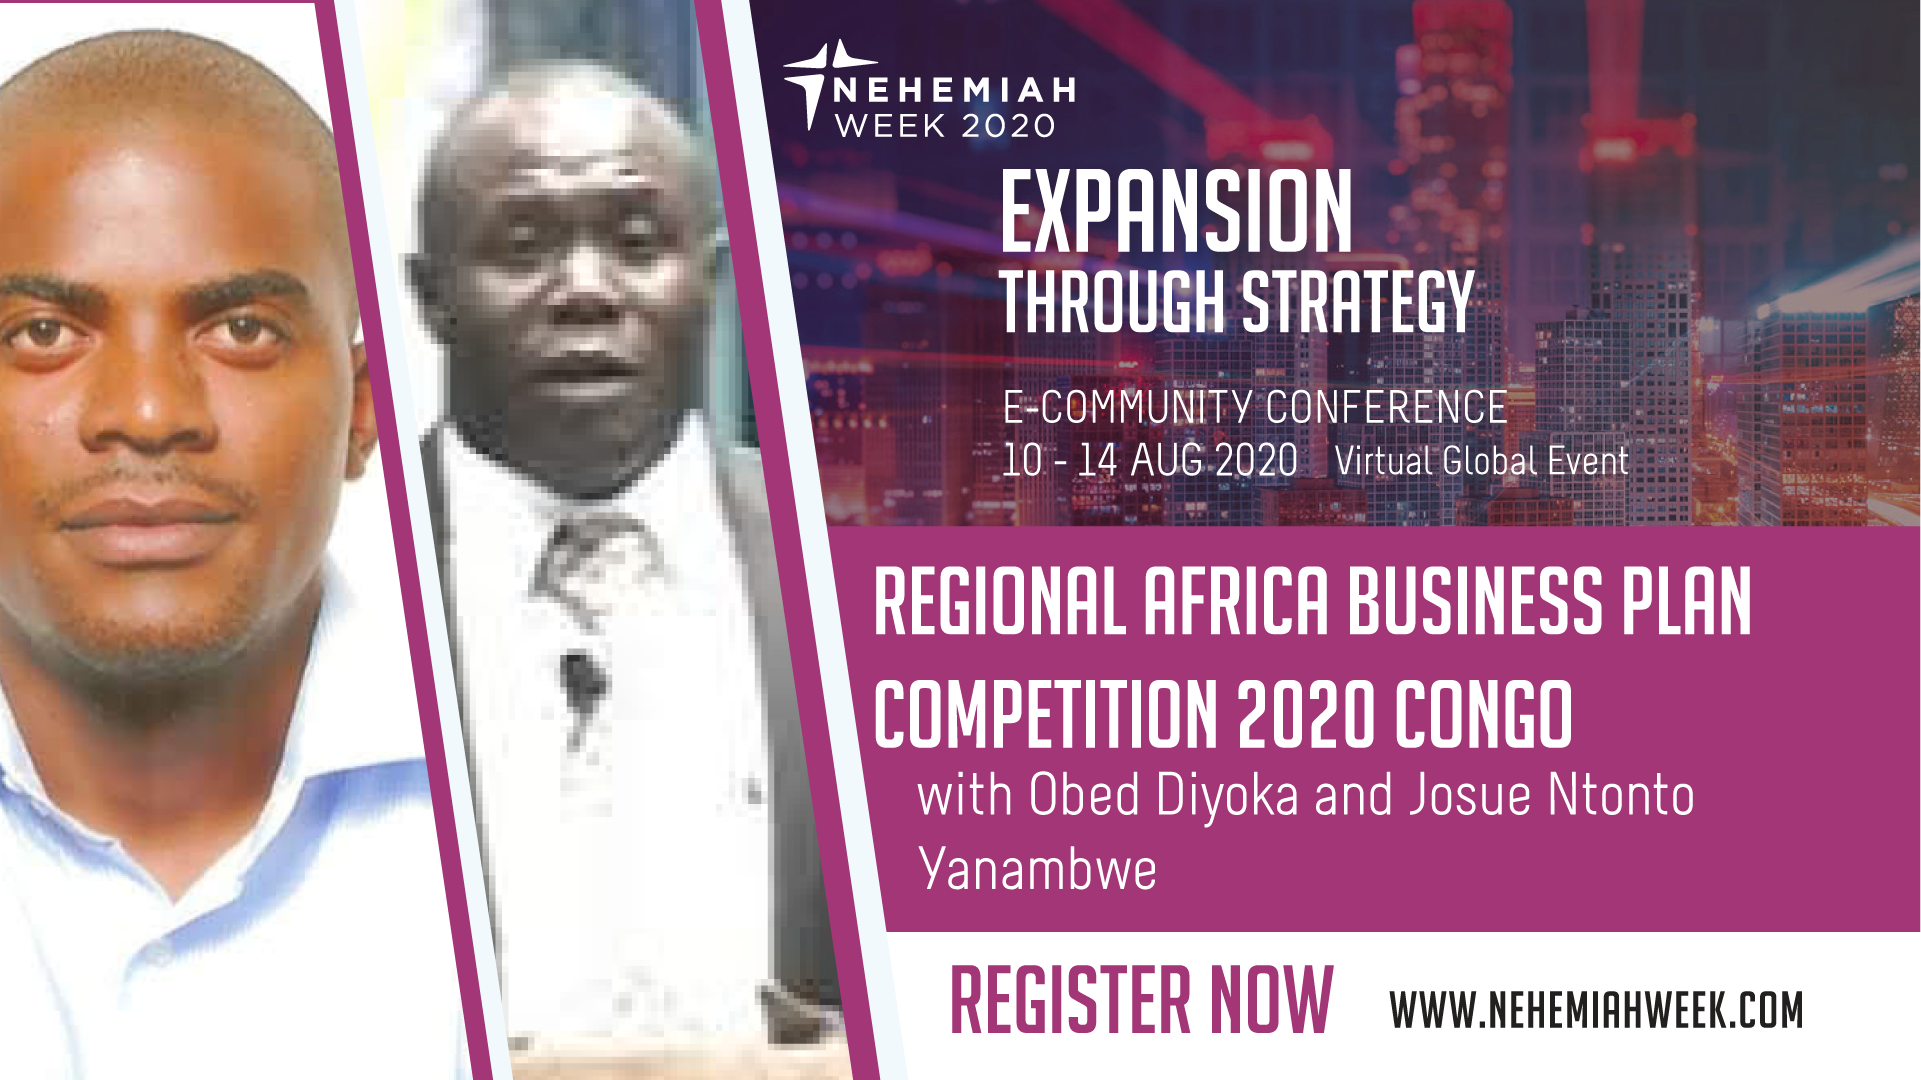 Regional Africa Business Plan Competition 2020 Congo with Obed Diyoka and Josue Ntonto Yanambwe